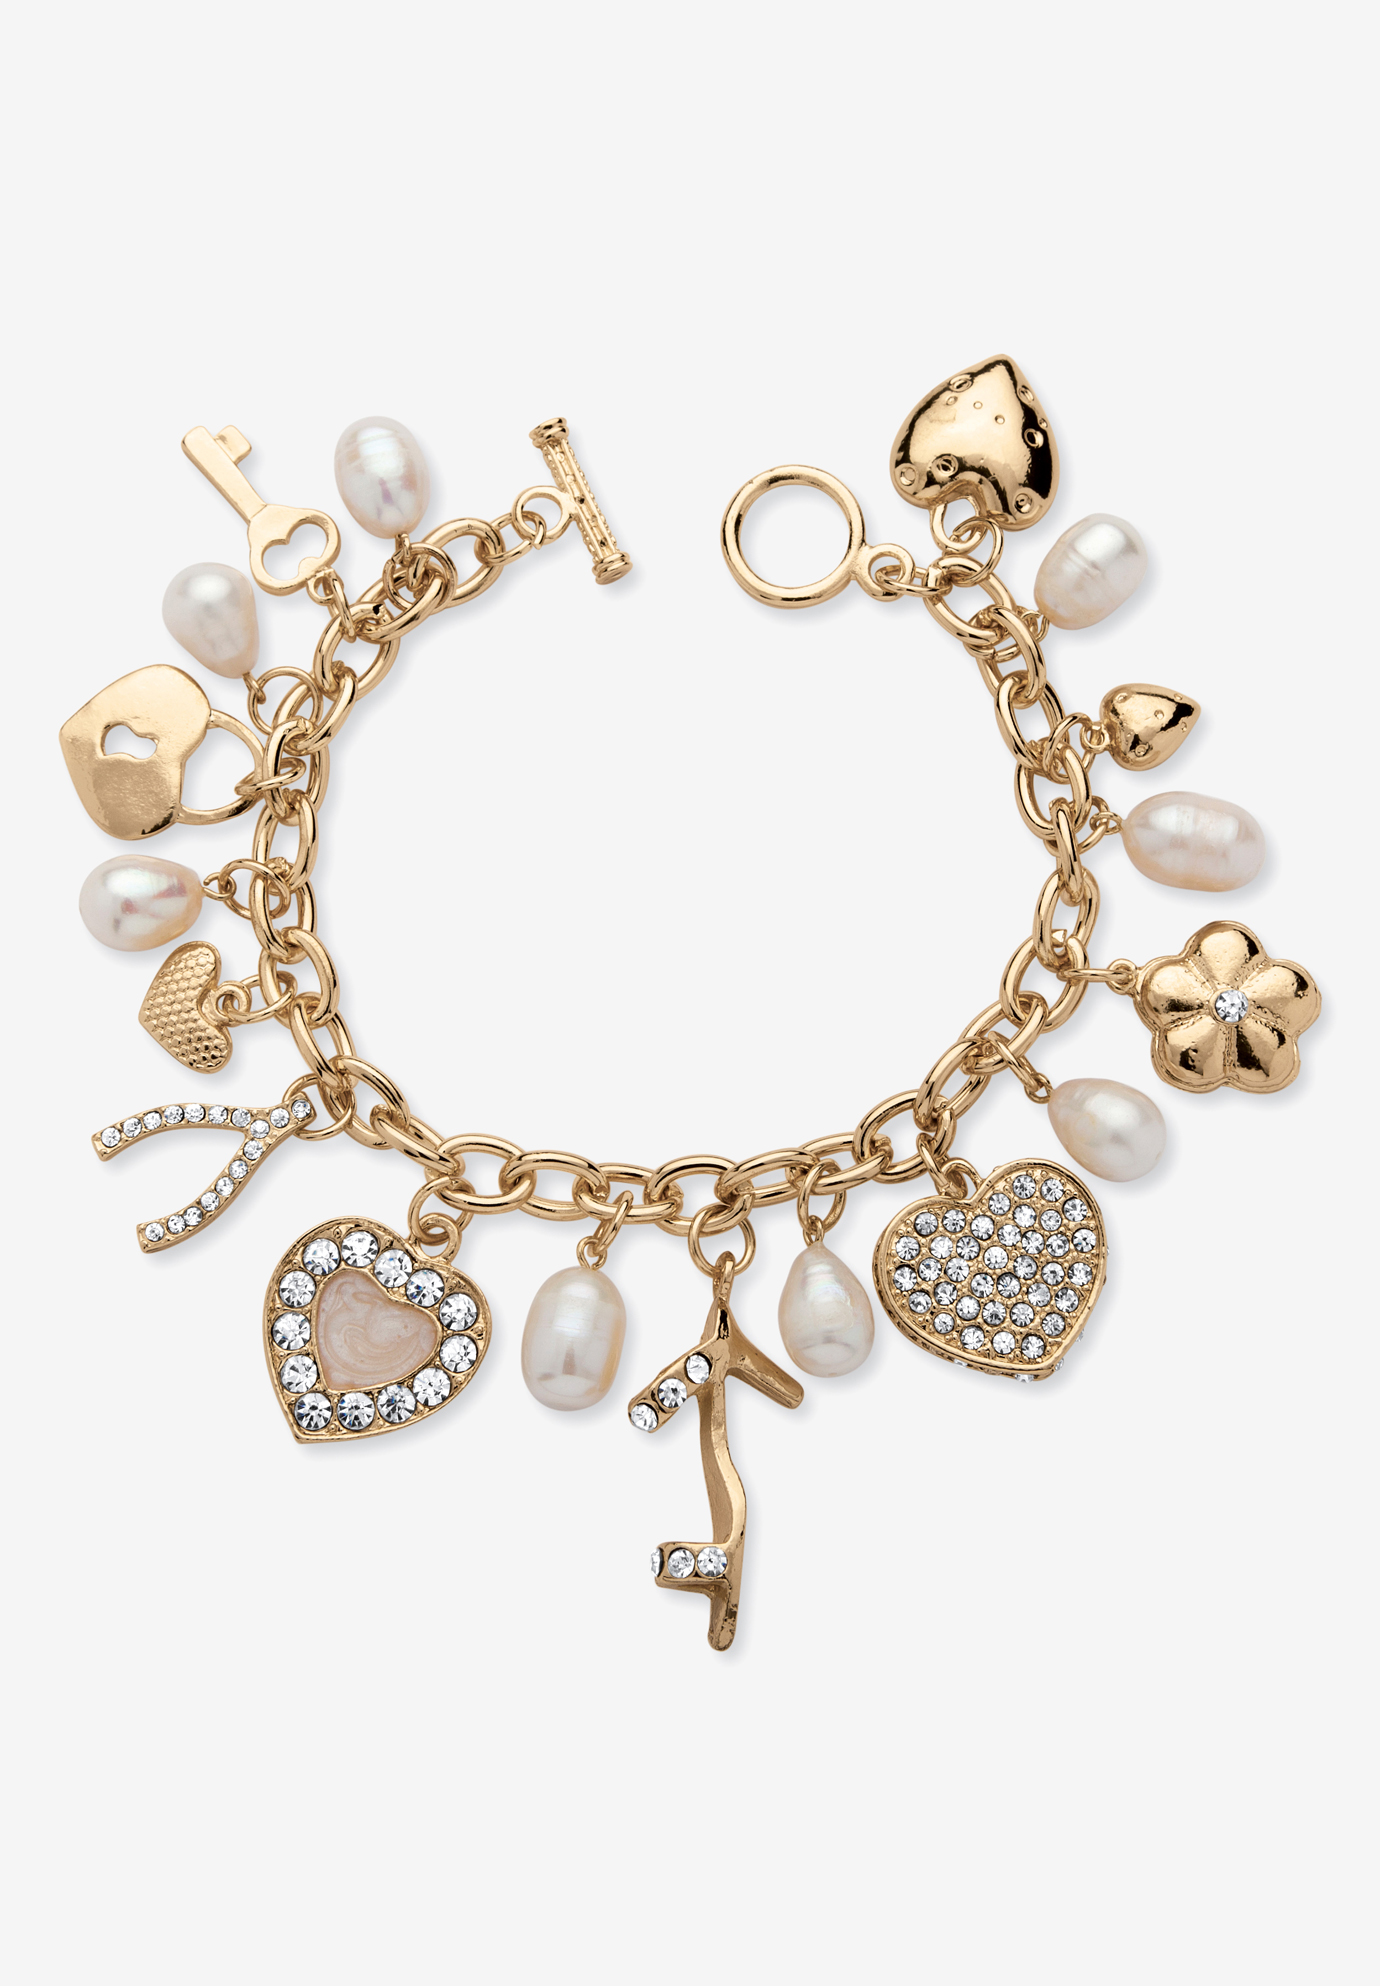 "Gold Tone Charm Bracelet Crystal and Cultured Freshwater Pearl 8"", CRYSTAL"